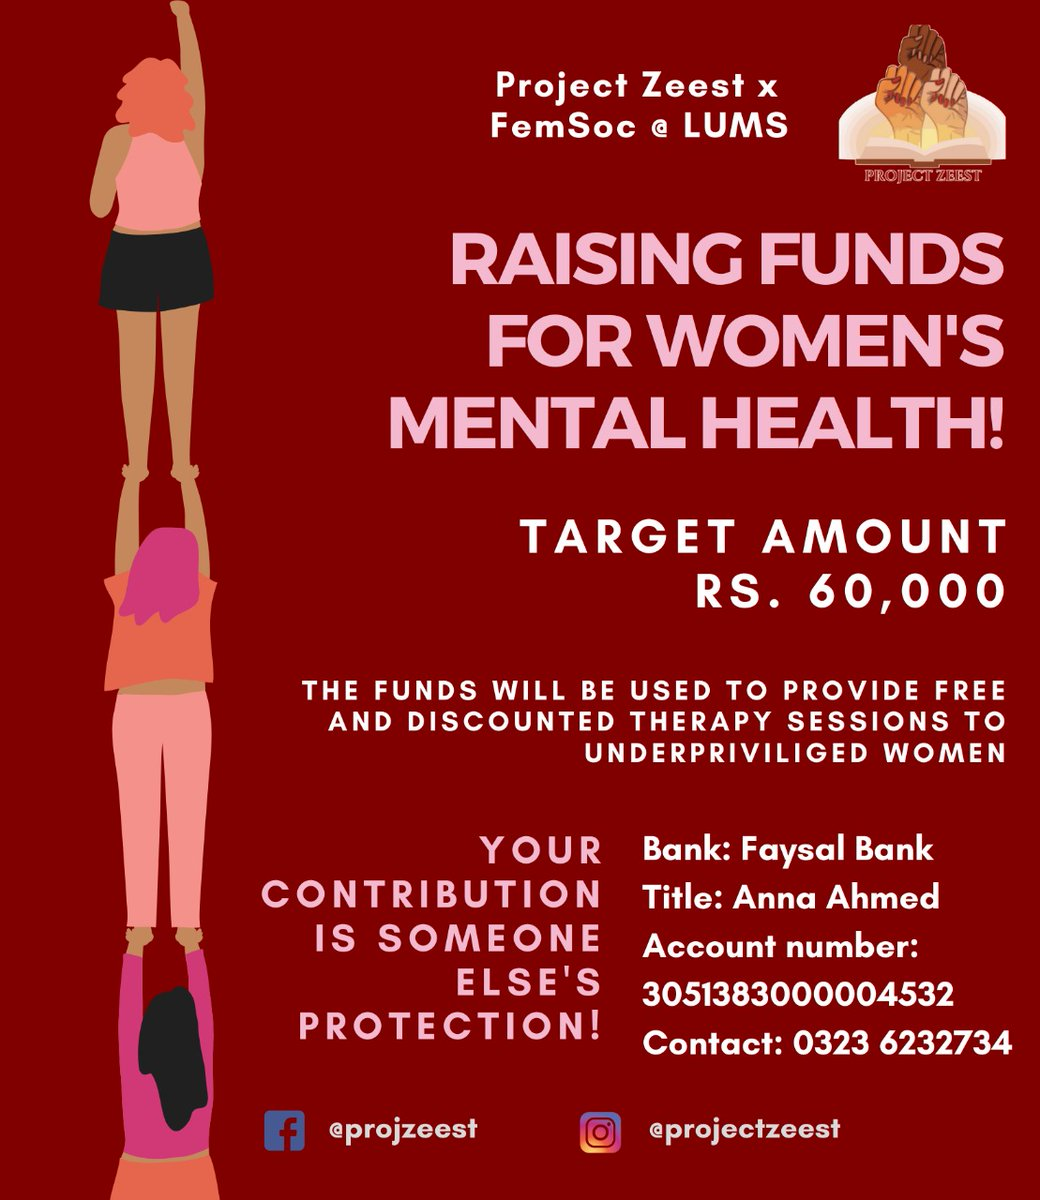 *Please retweet/share* We are aiming to provide free and discounted therapy to women in need all over Pakistan. We are nowhere near our target rn. Please circulate this poster amongst your family and friends too! You can inbox us for any queries.